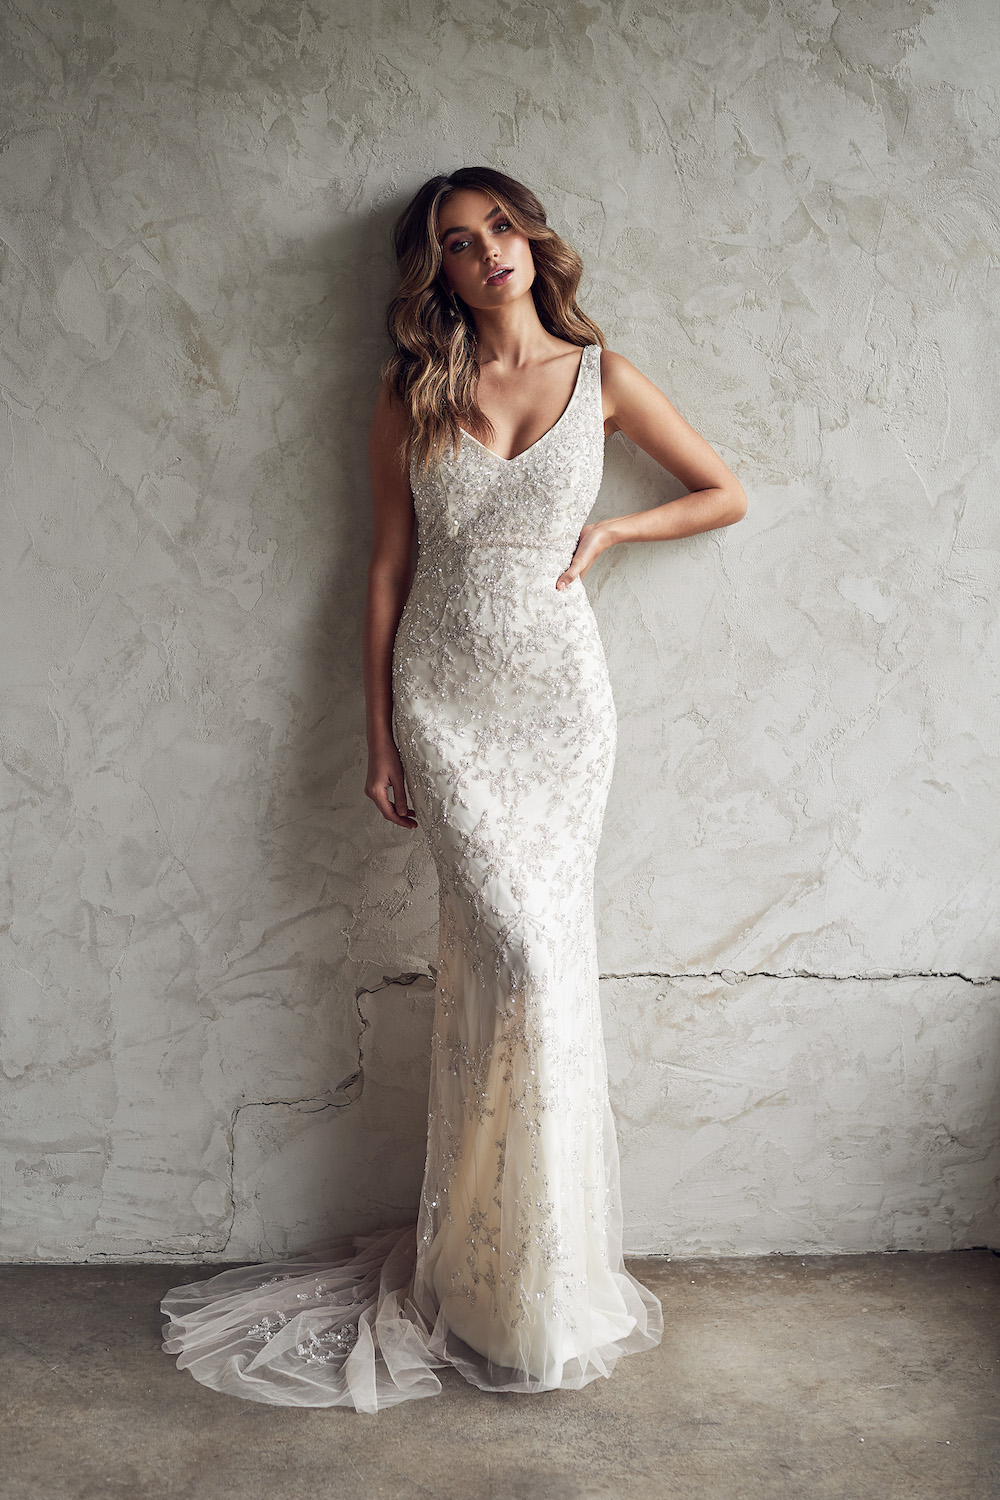 ANNA CAMPBELL Eden Fitted Dress | Wedding Dress under $7,500 | LOVE FIND CO. Bridal Directory